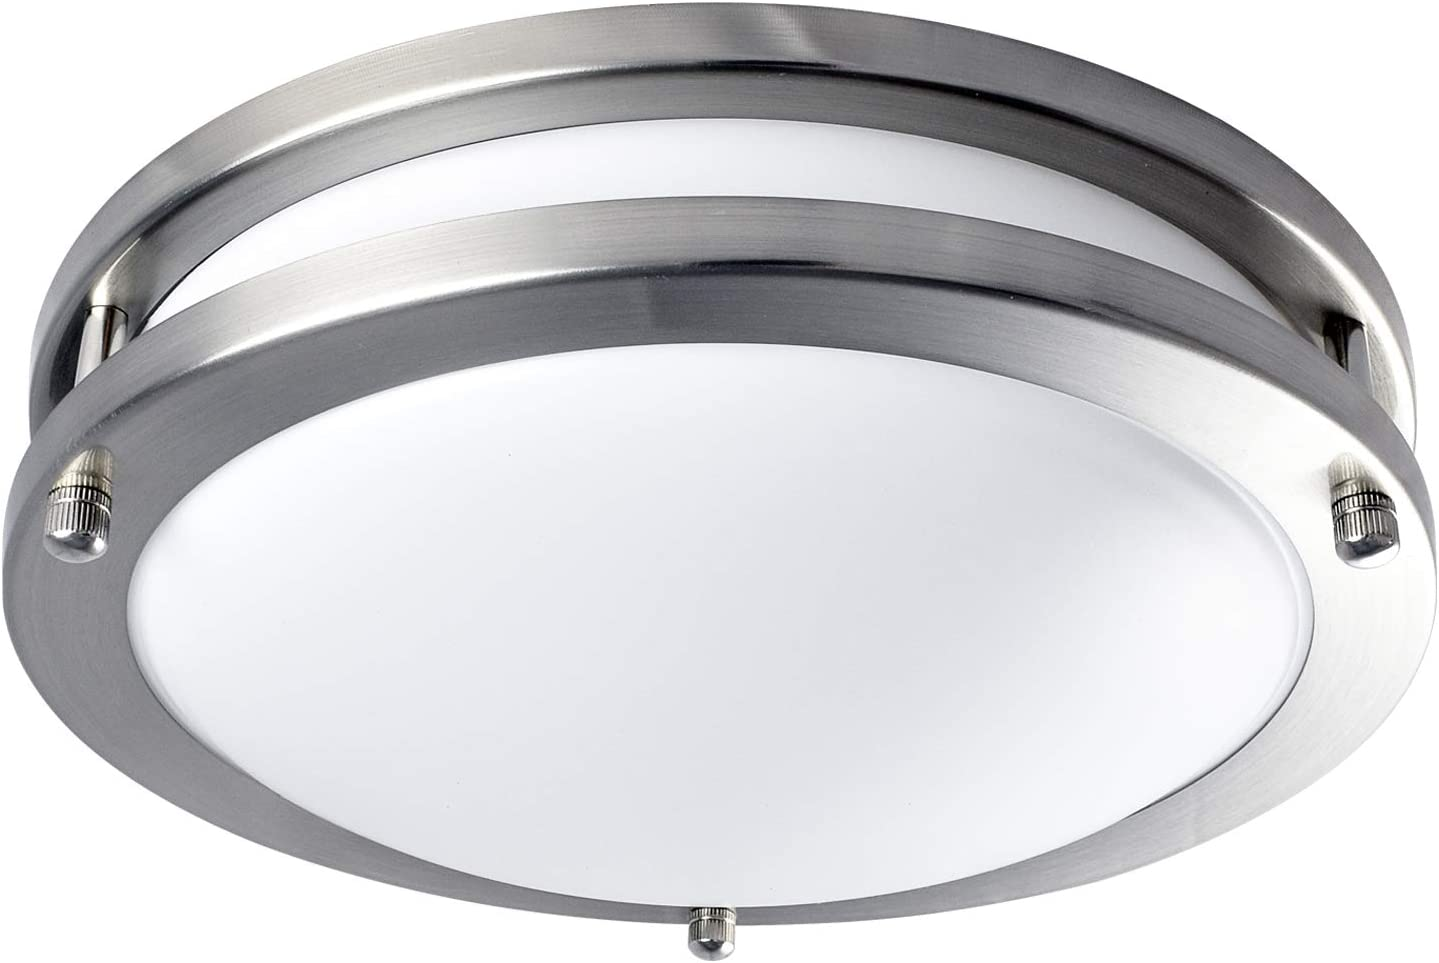 Luxrite LED Flush Mount Ceiling Light, 10 Inch, Dimmable, 3000K Soft White, 1000 Lumens, 14W Ceiling Light Fixture, Energy Star & ETL - Perfect for Kitchen, Bathroom, Entryway, and Closet